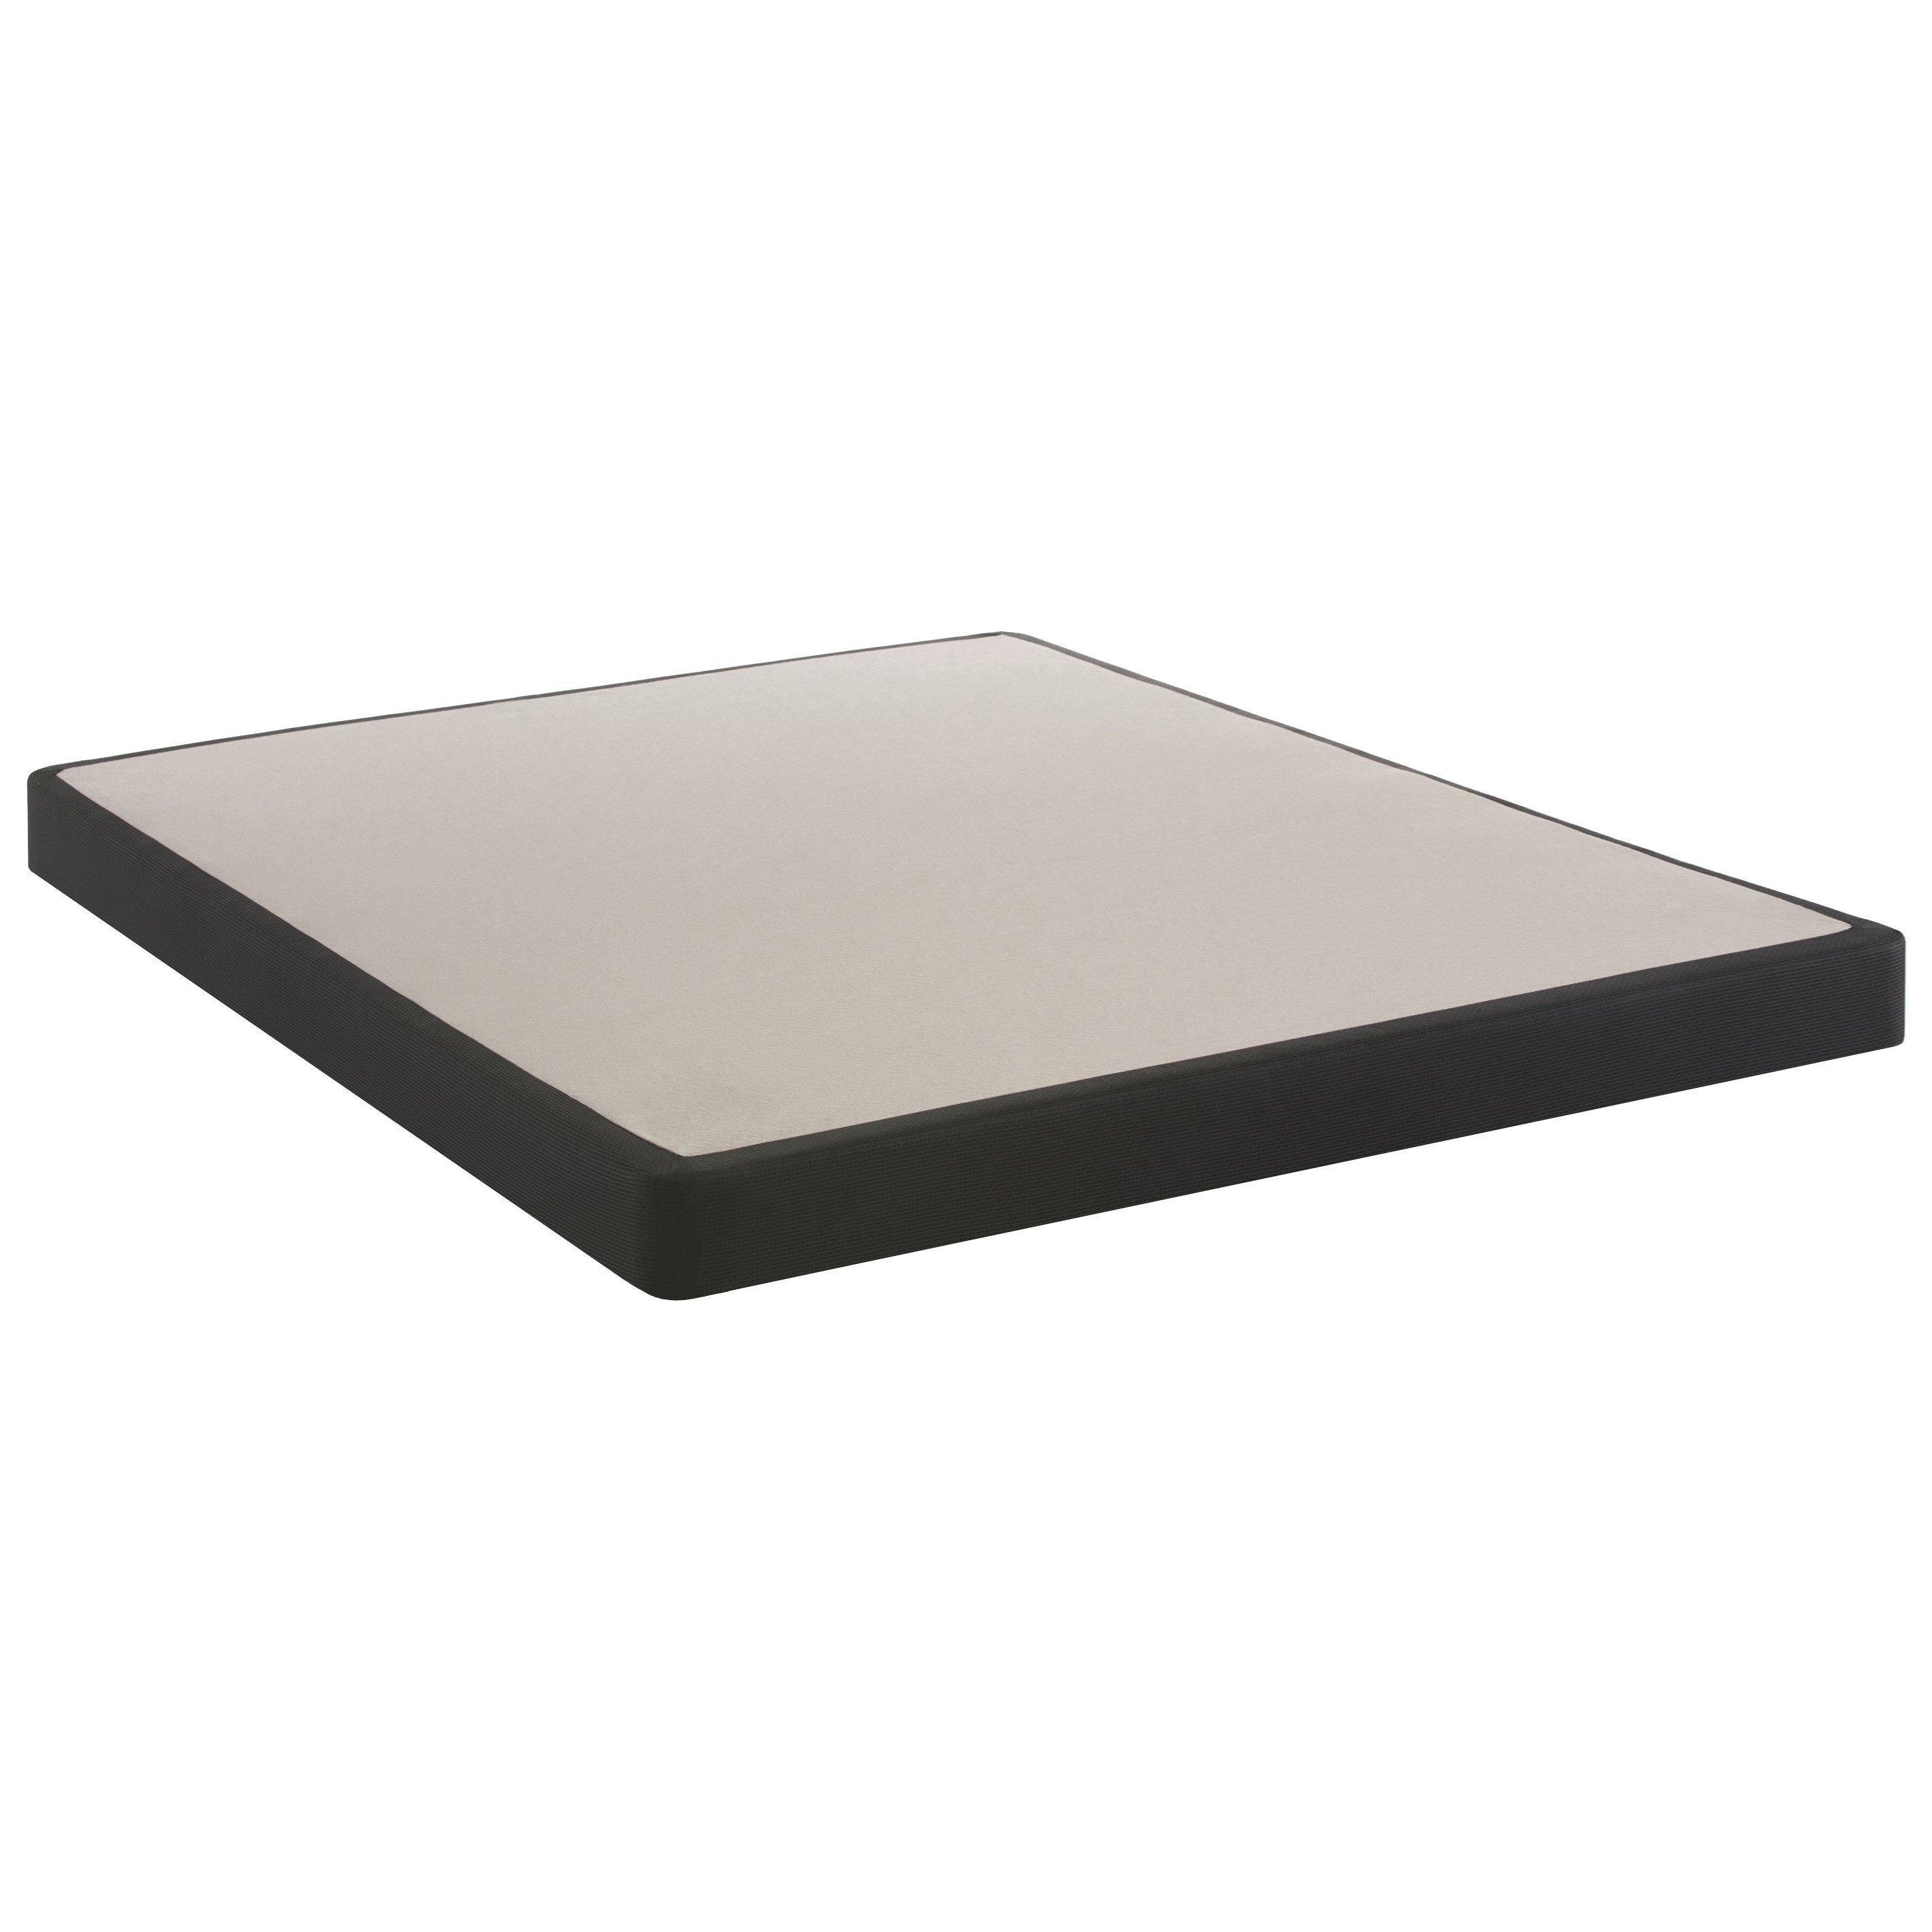 """2017 StableSupport Foundations Split Cal King Low Profile Base 5"""" Height by Sealy at Gill Brothers Furniture"""